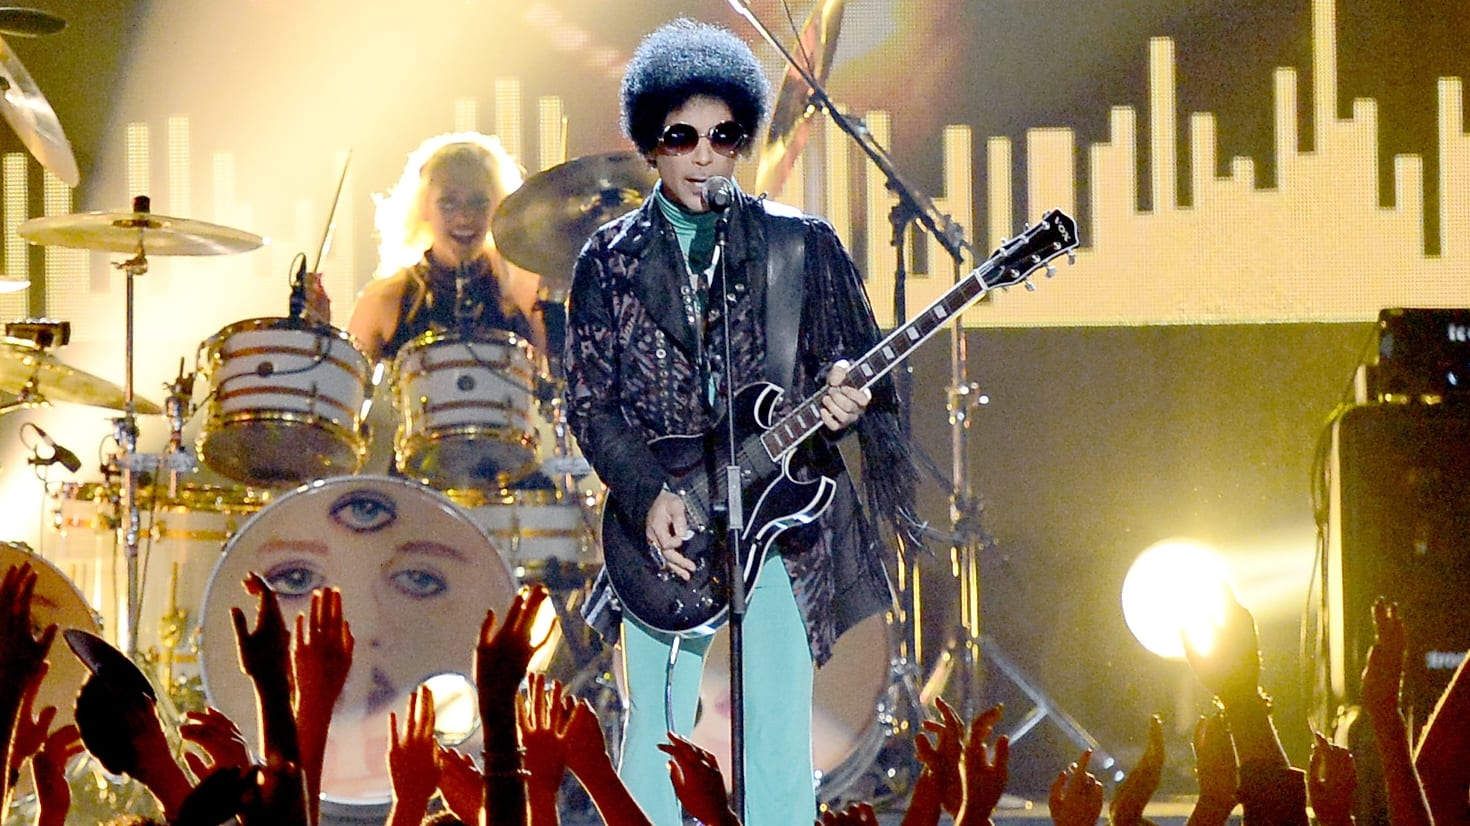 There Will Never Be Another Like Prince The Greatest Recording